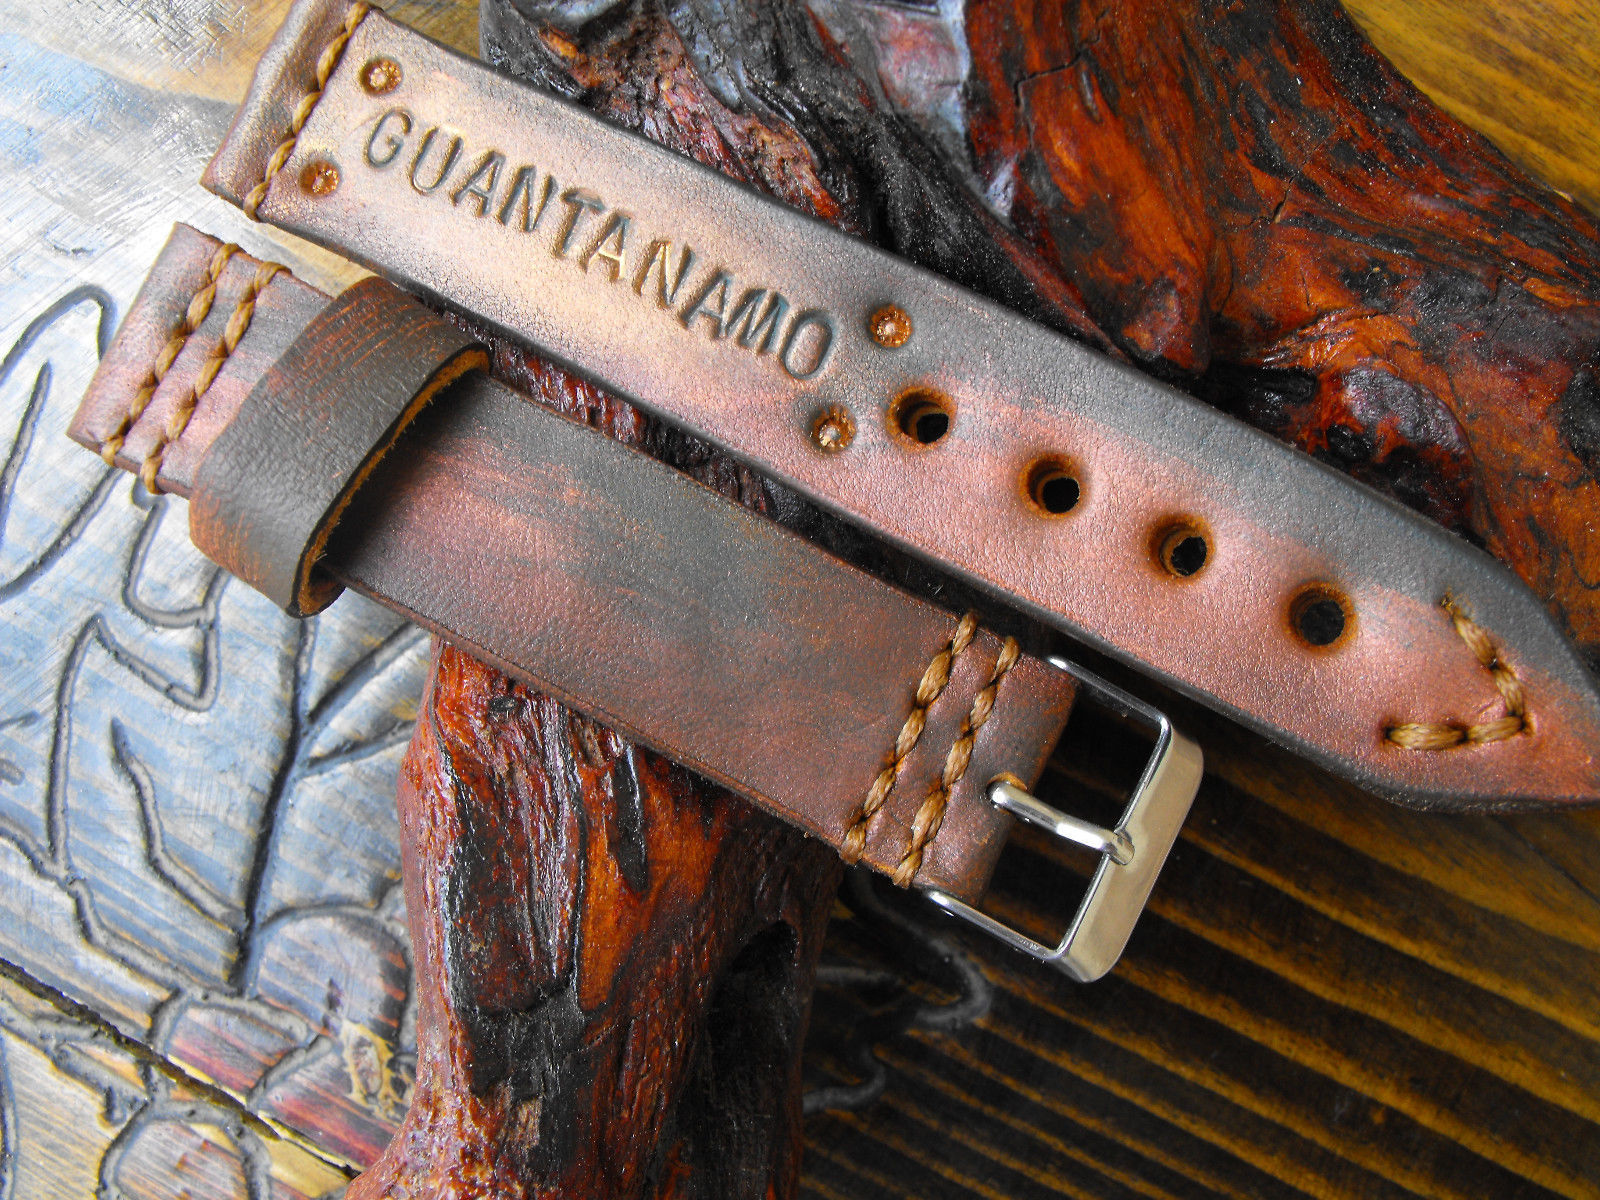 Primary image for 20mm leather watch strap #Guantanamo handcrafted strap antique style watch band